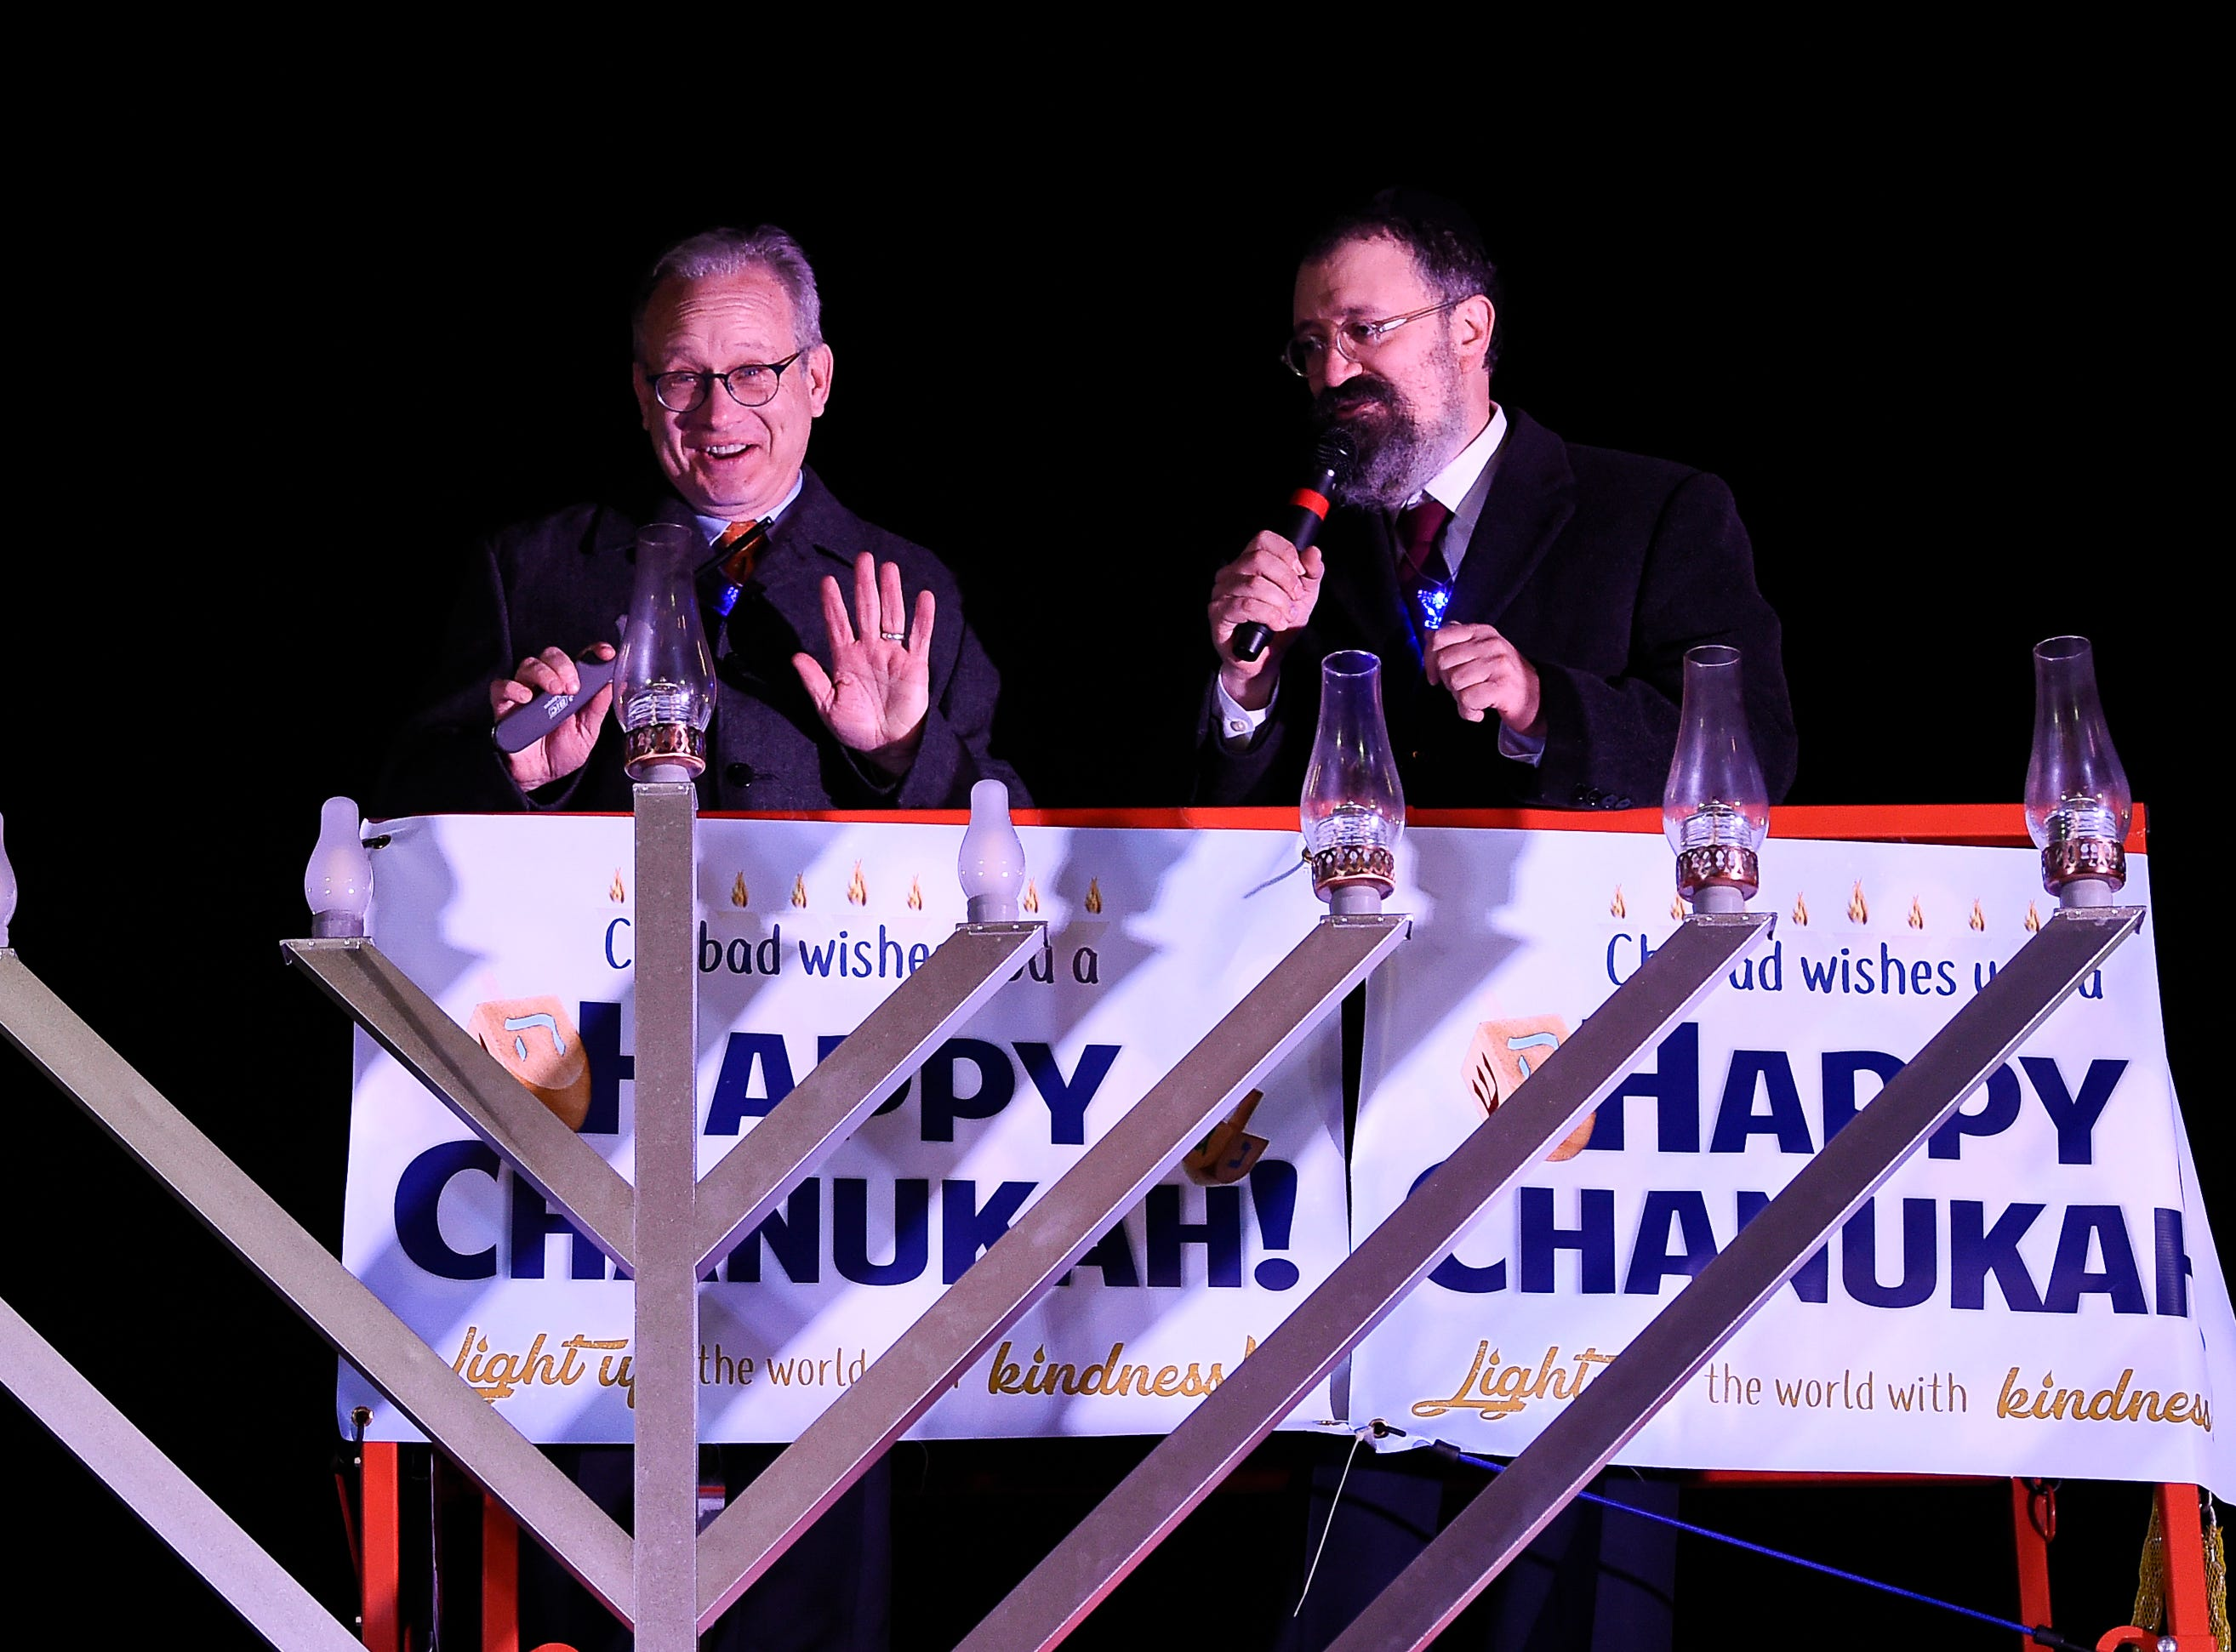 Mayor David Briley and Rabbi Yitzchok Tiechtel prepare to light candles during a Chanukah menorah lighting ceremony at Public Square Park Tuesday, Dec. 4, 2018, in Nashville, Tenn.